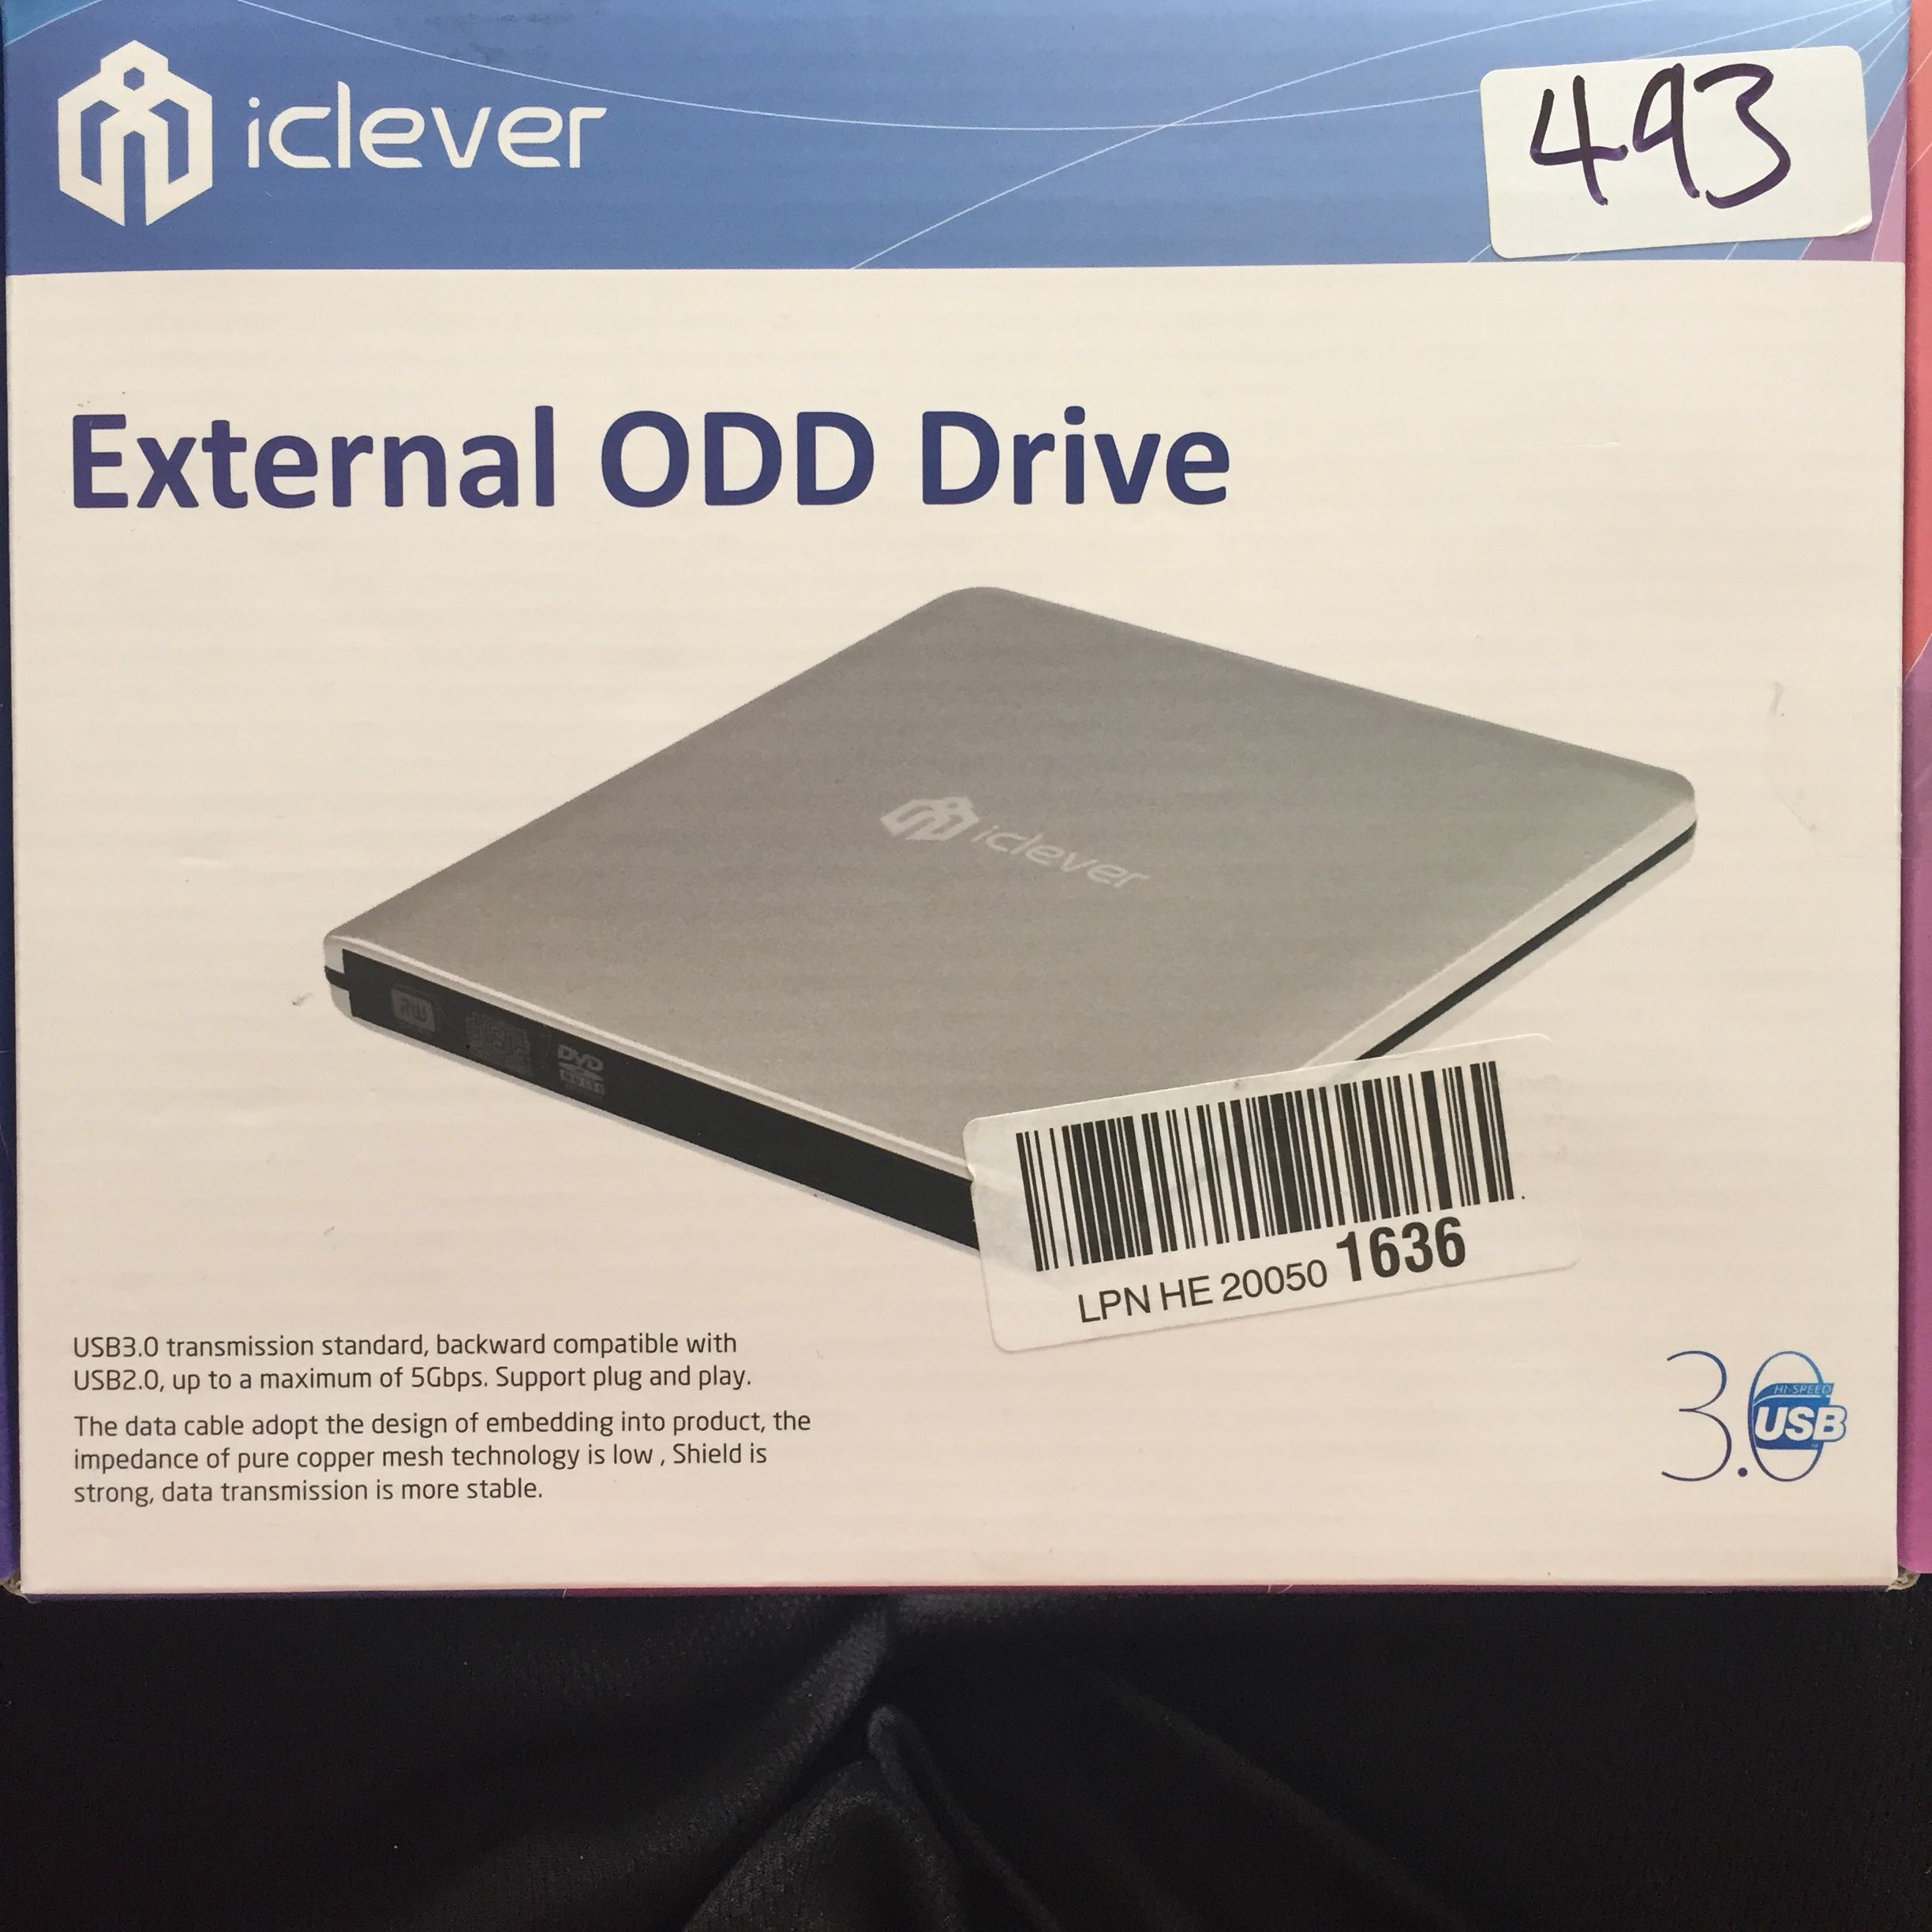 493 Iclever Usb 30 External Dvd Cd Drive High Speed Rw M Tech Burner For Apple Macbook Pro Air Imac Samsung S8 Plus And Other Pc Laptop Desktop